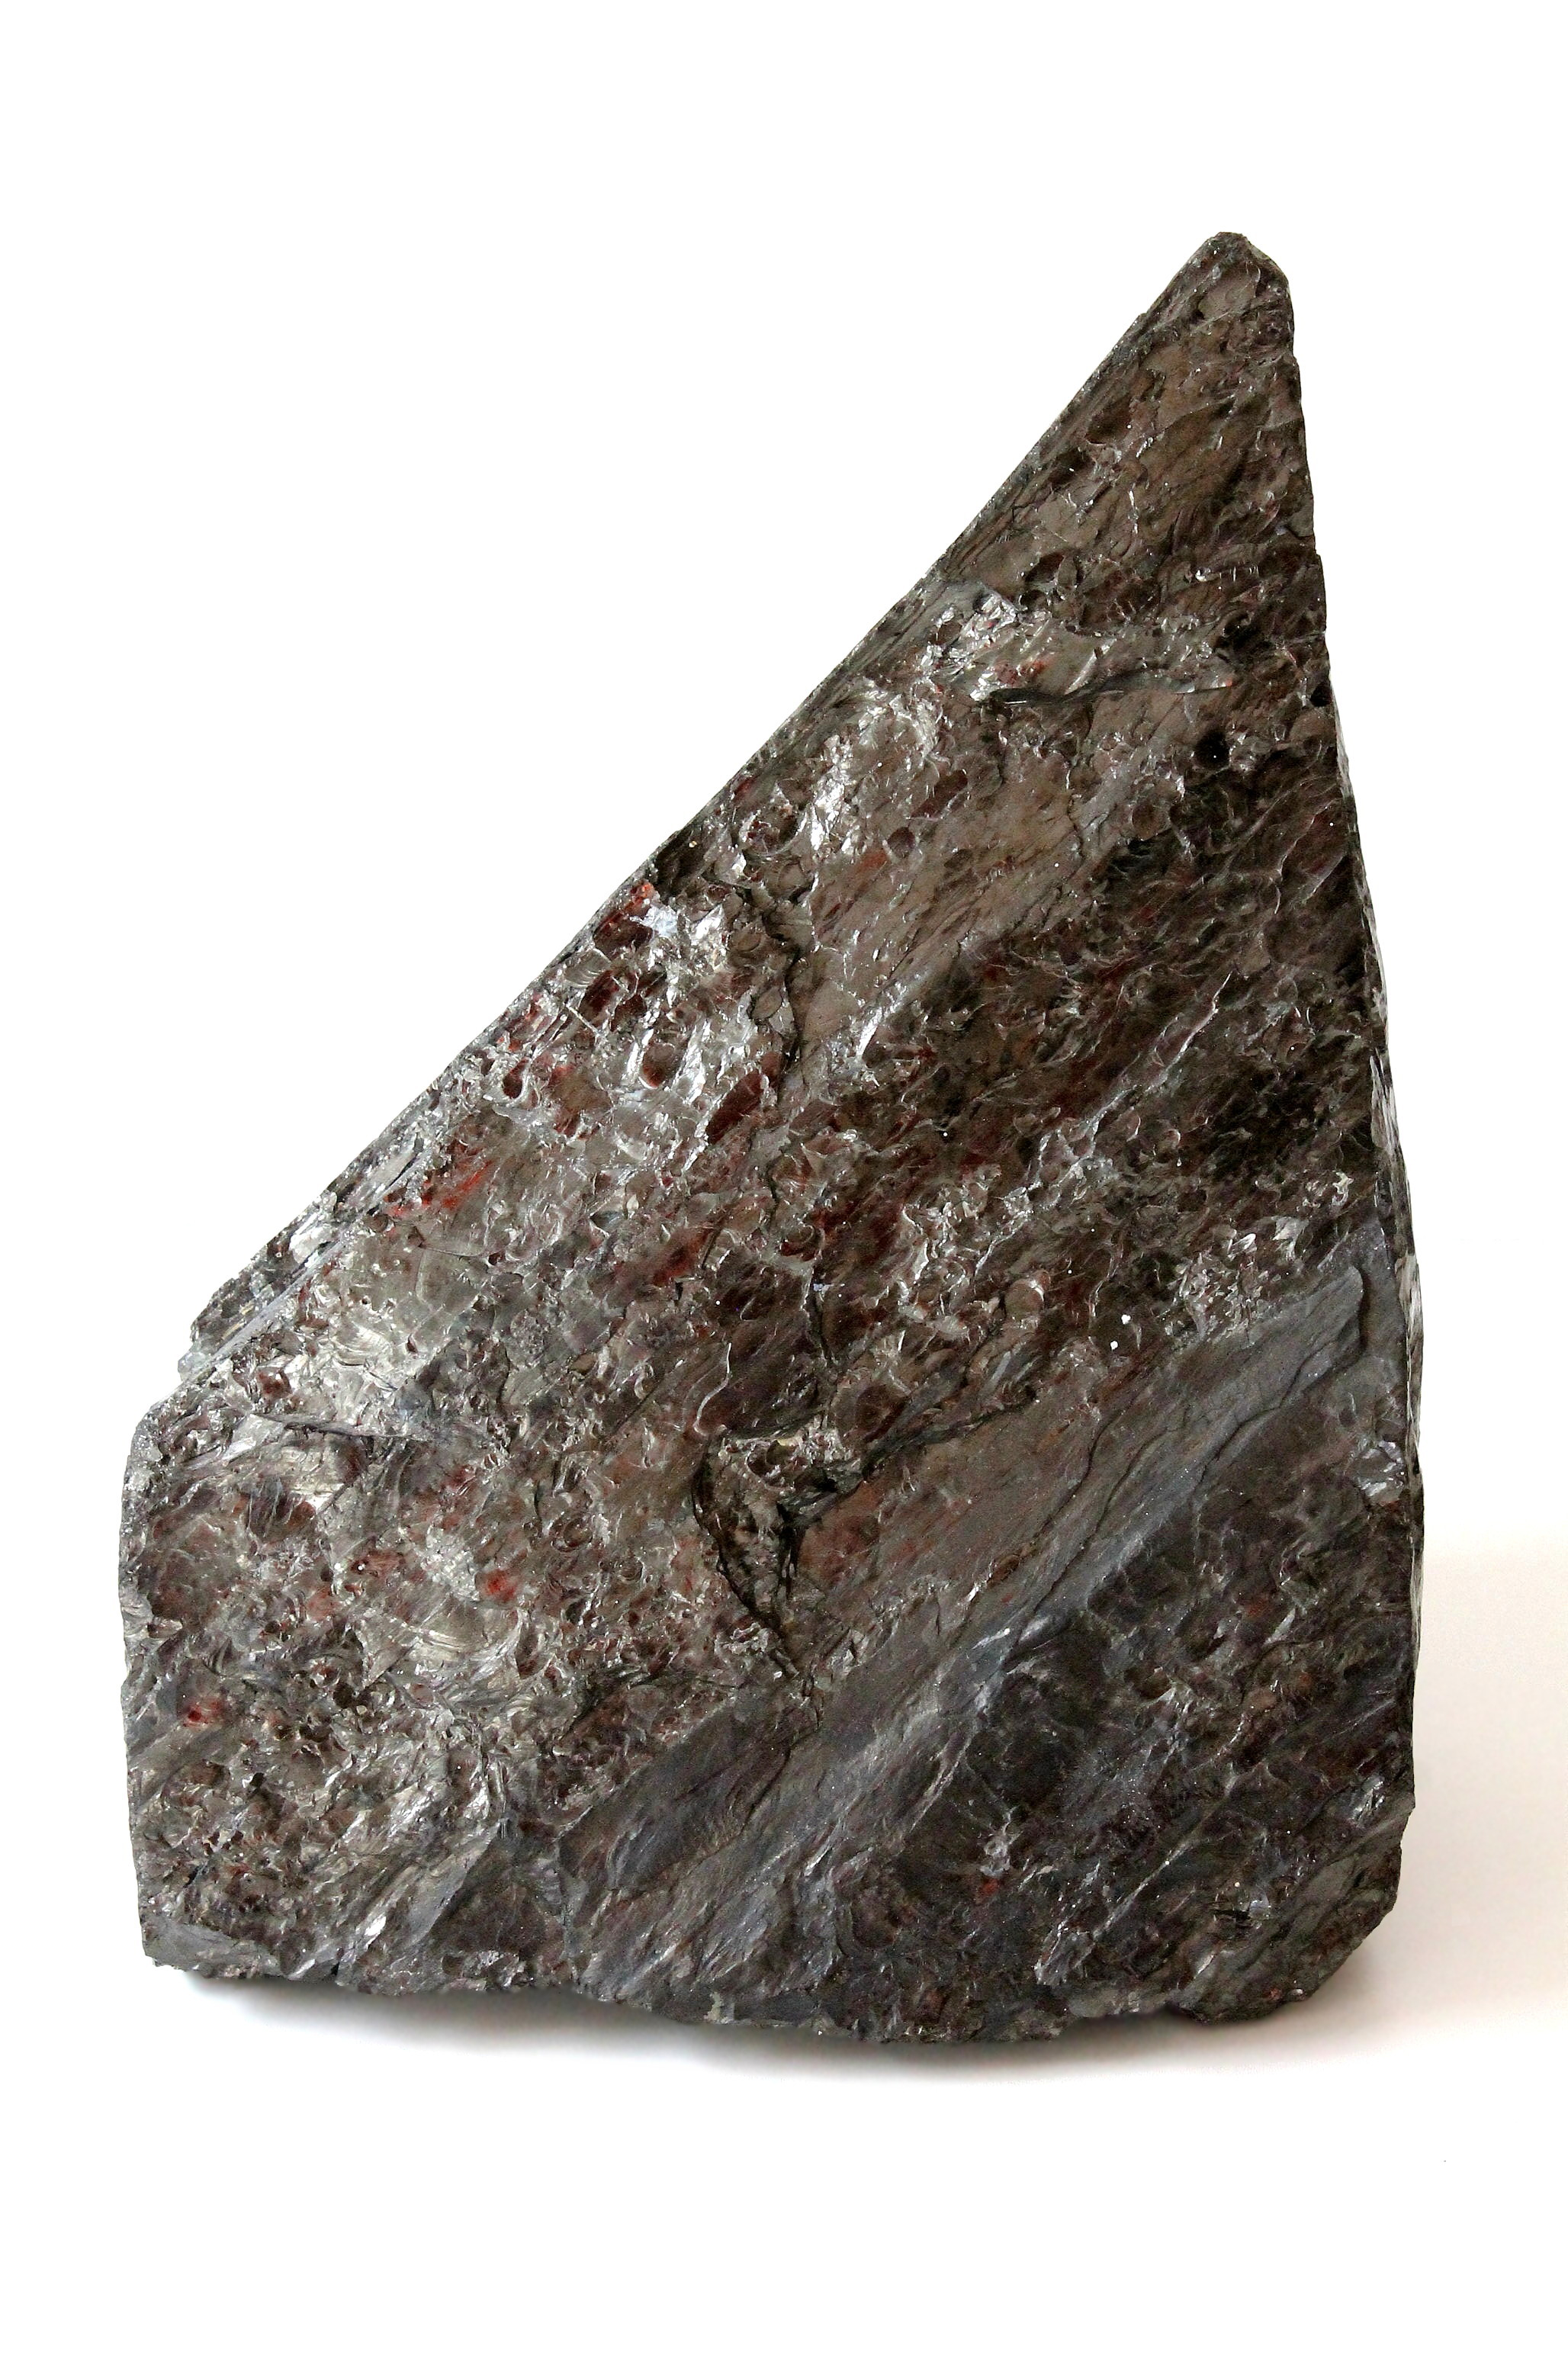 Anthracite - Wikipedia